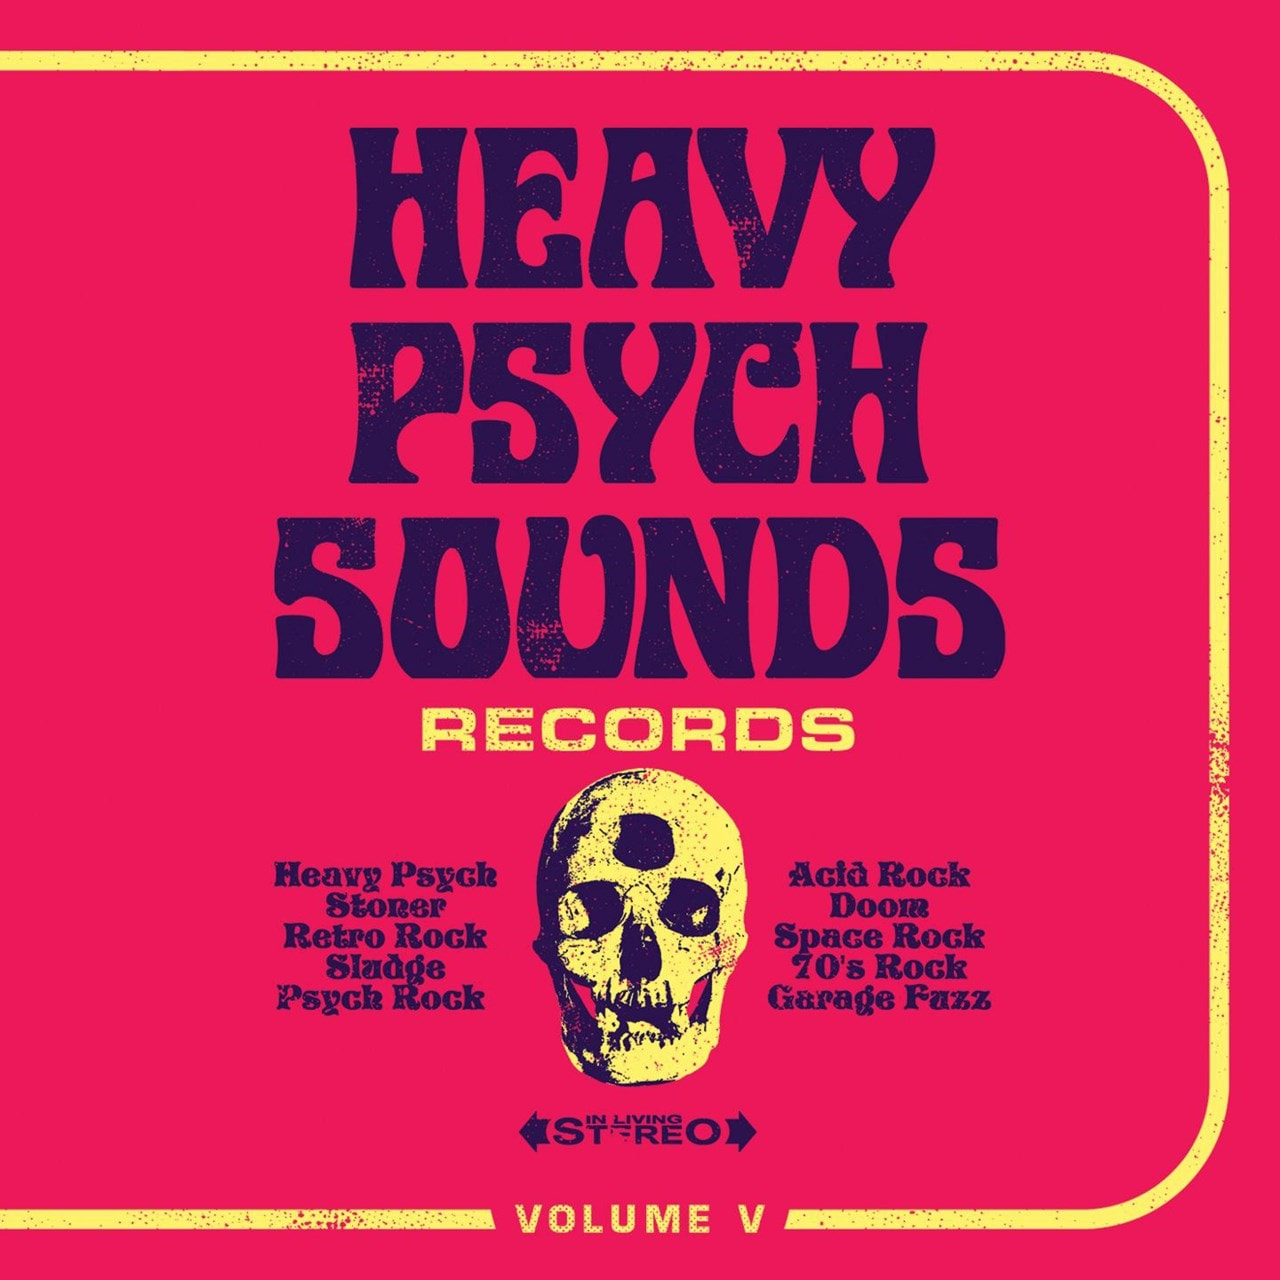 Heavy Psych Sounds Sampler - Volume V - 1